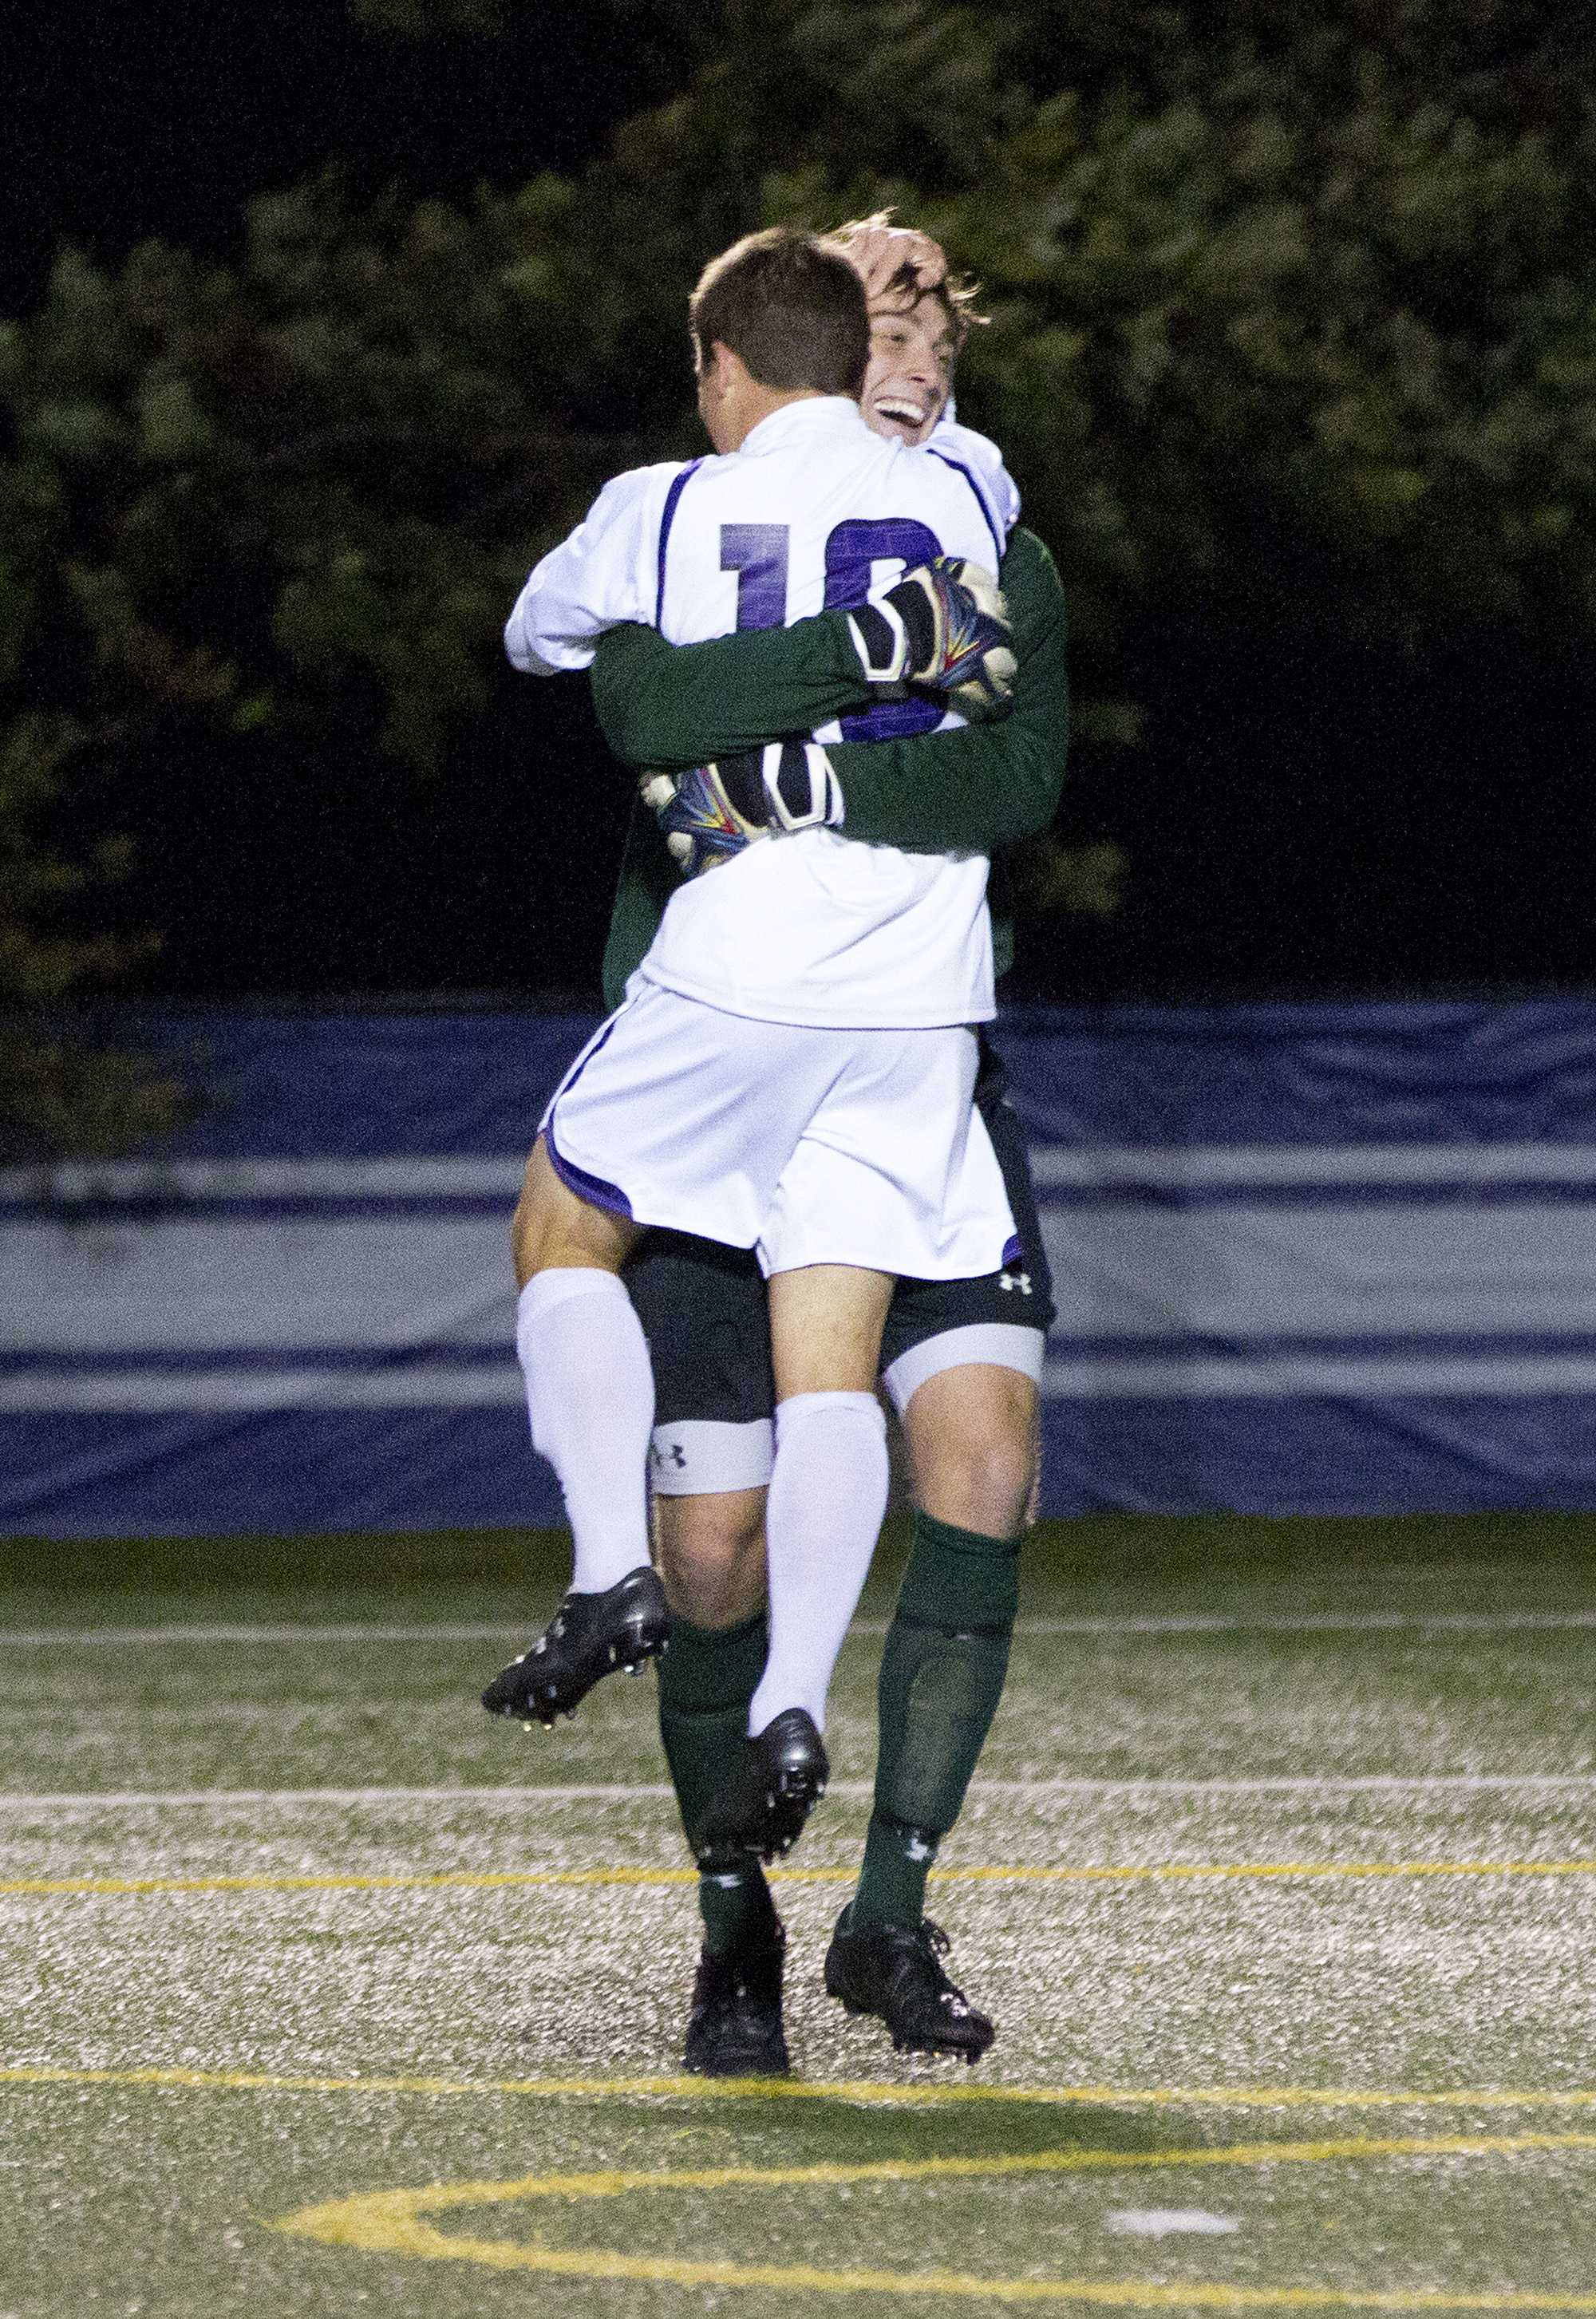 Goalkeeper Tyler Miller embraces forward Joey Calistri after the Wildcats' 2-1 win over no. 7 Notre Dame. Calistri notched one goal and assisted on the other in the contest, while Miller stopped six shots.